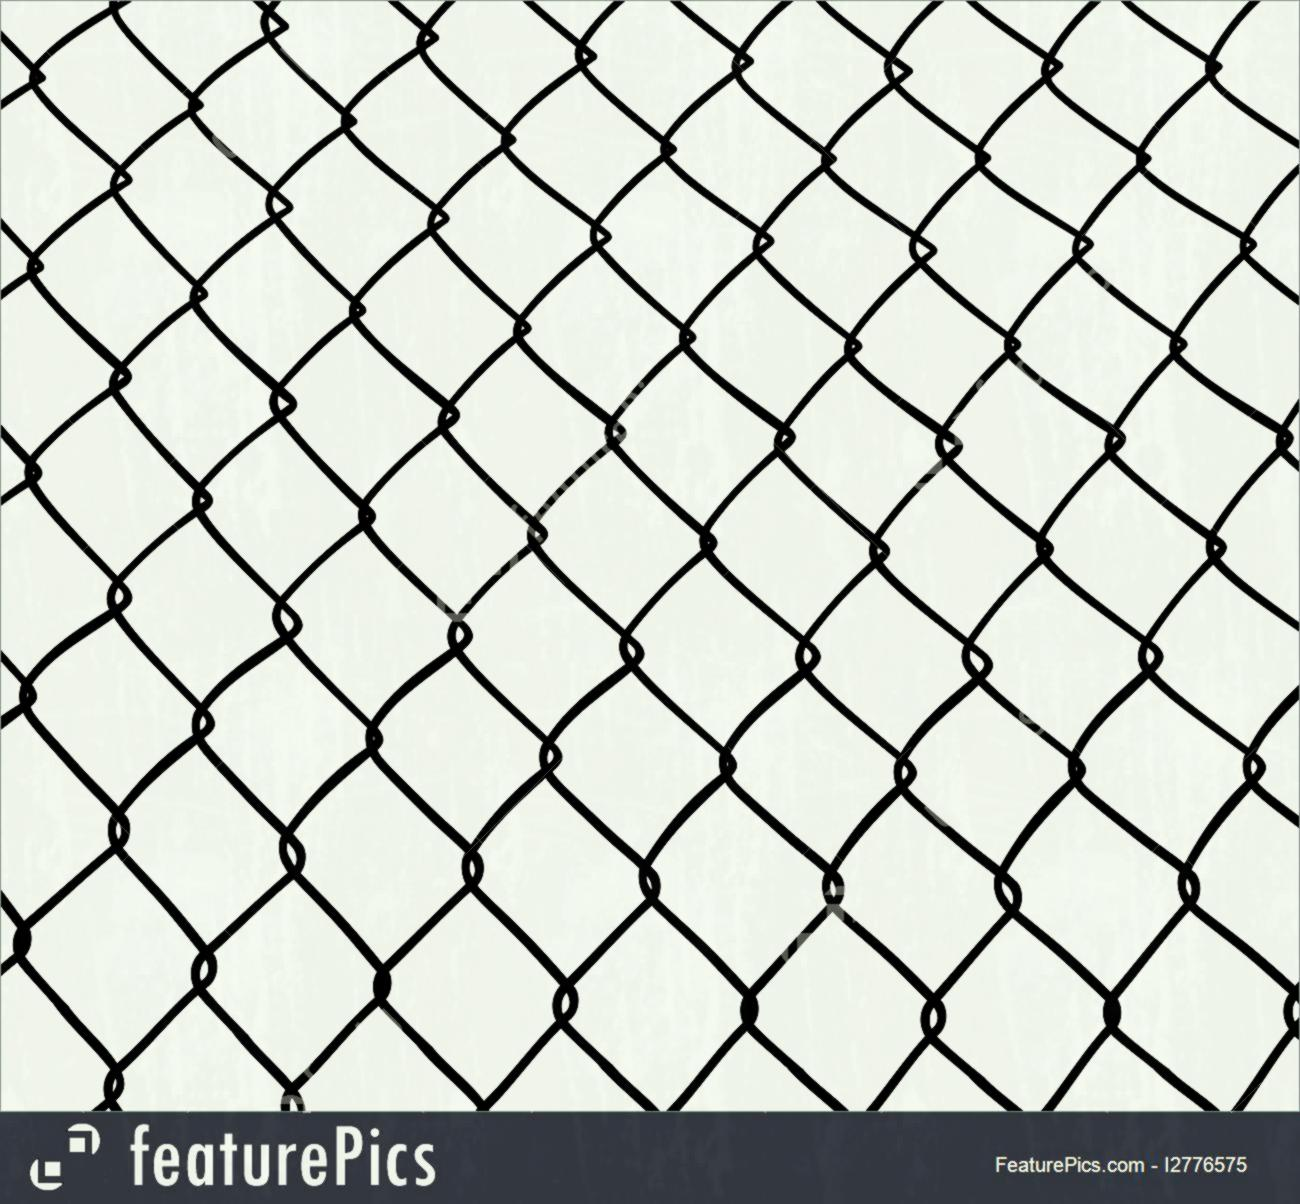 1300x1204 Safety And Security Chain Link Fence Seamless White Background